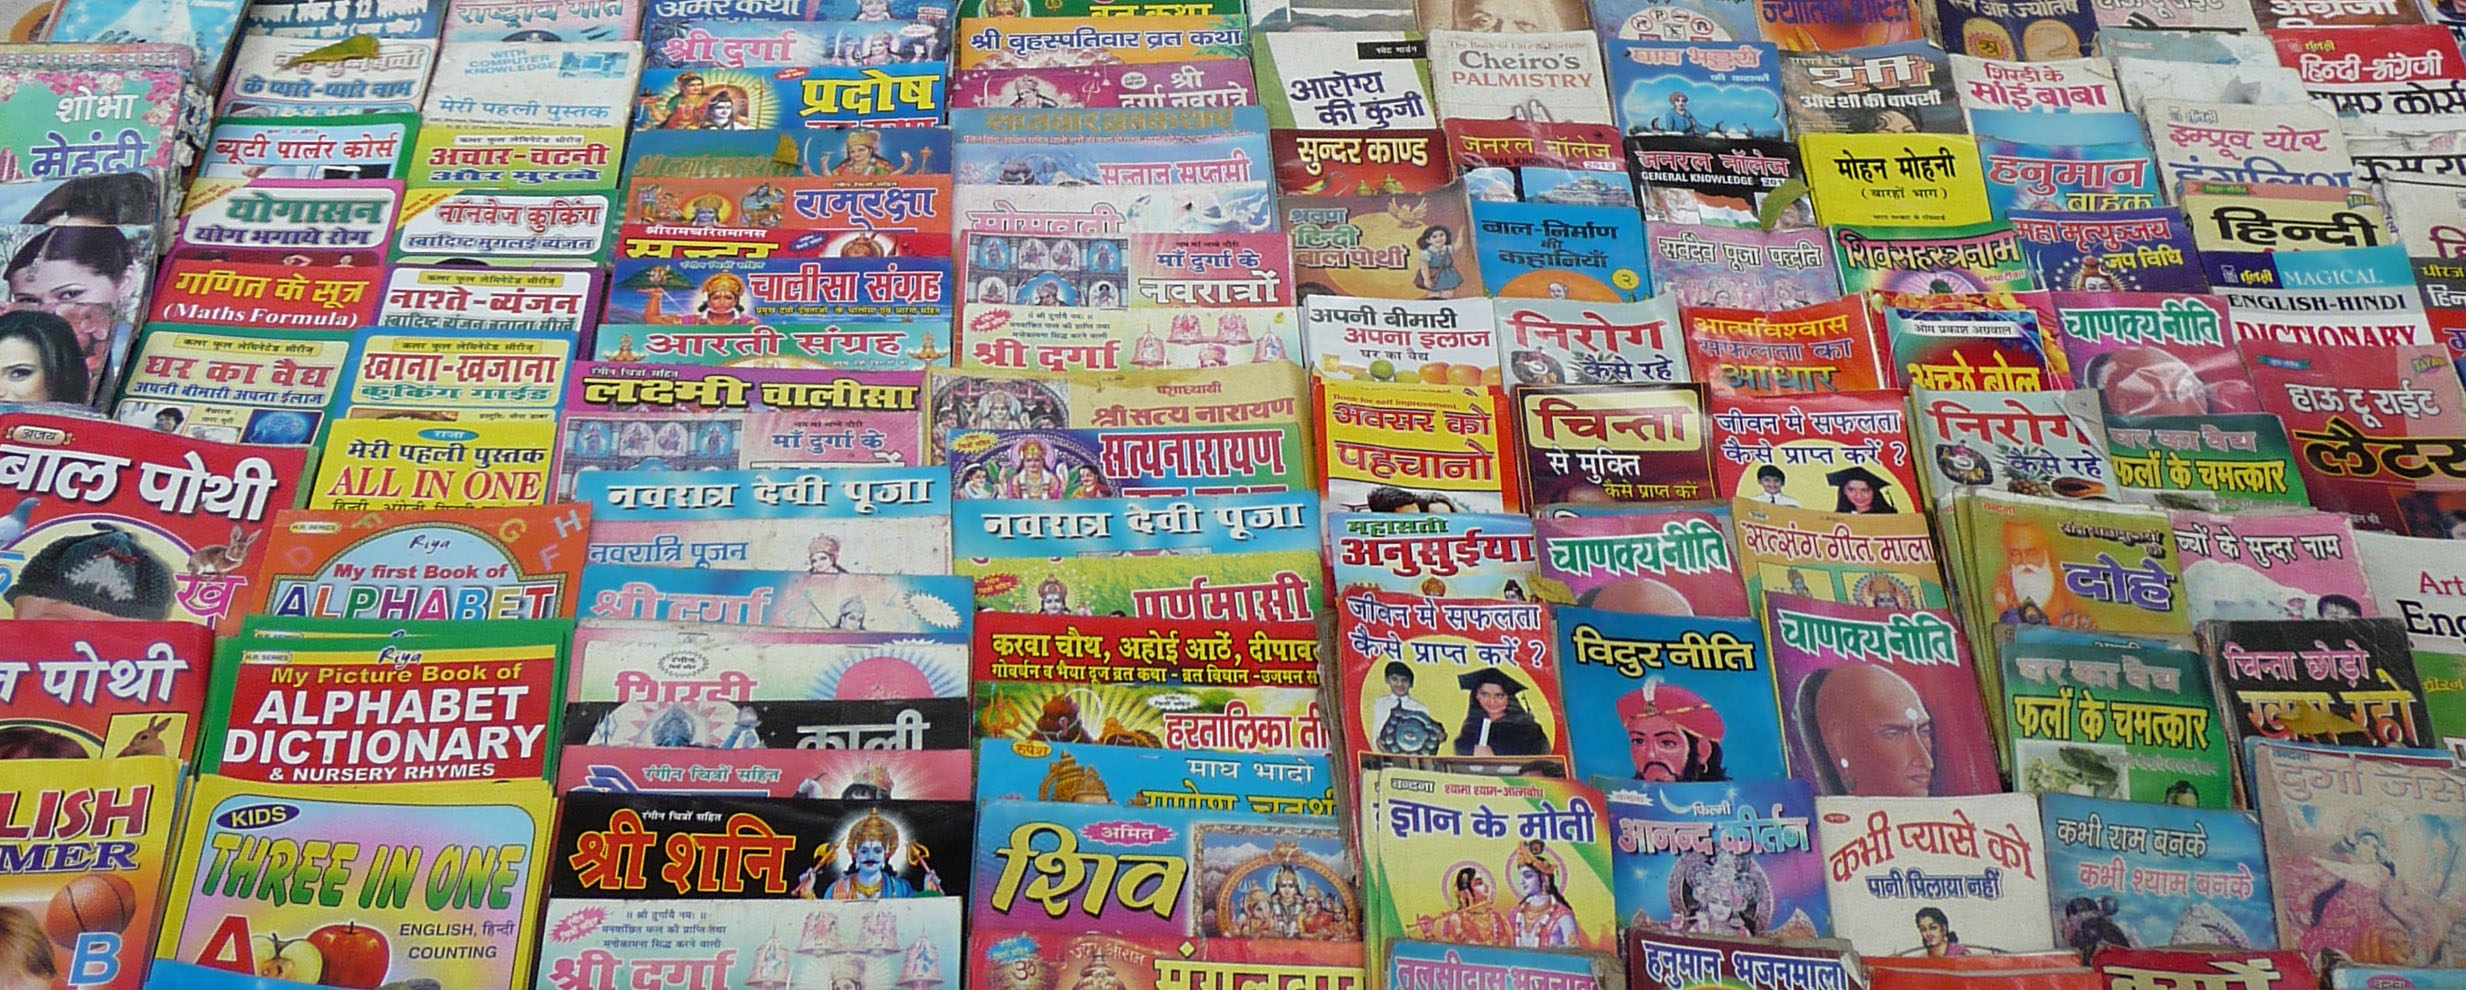 Books on Allahabad footsteps, India